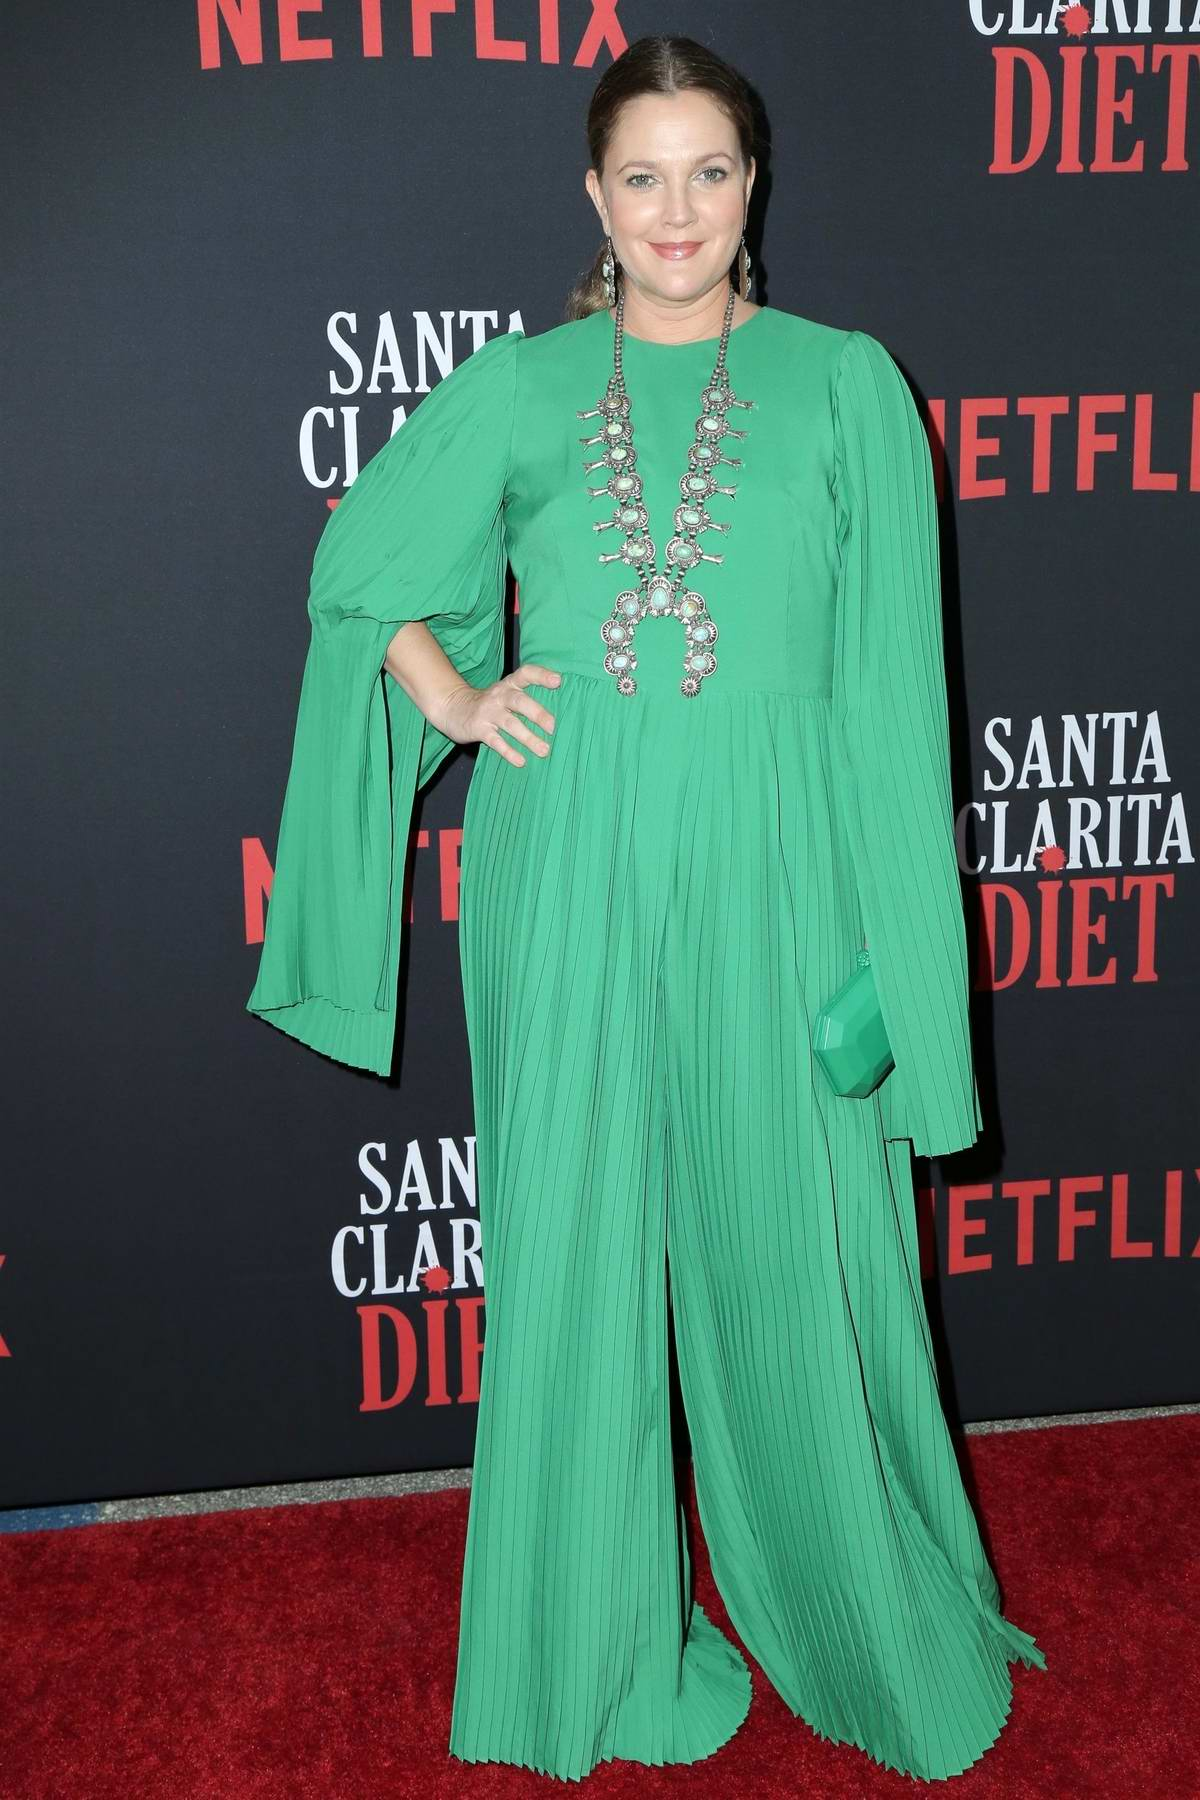 Drew Barrymore attends Netflix' 'Santa Clarita Diet' Season 3 TV Show Premiere in Los Angeles